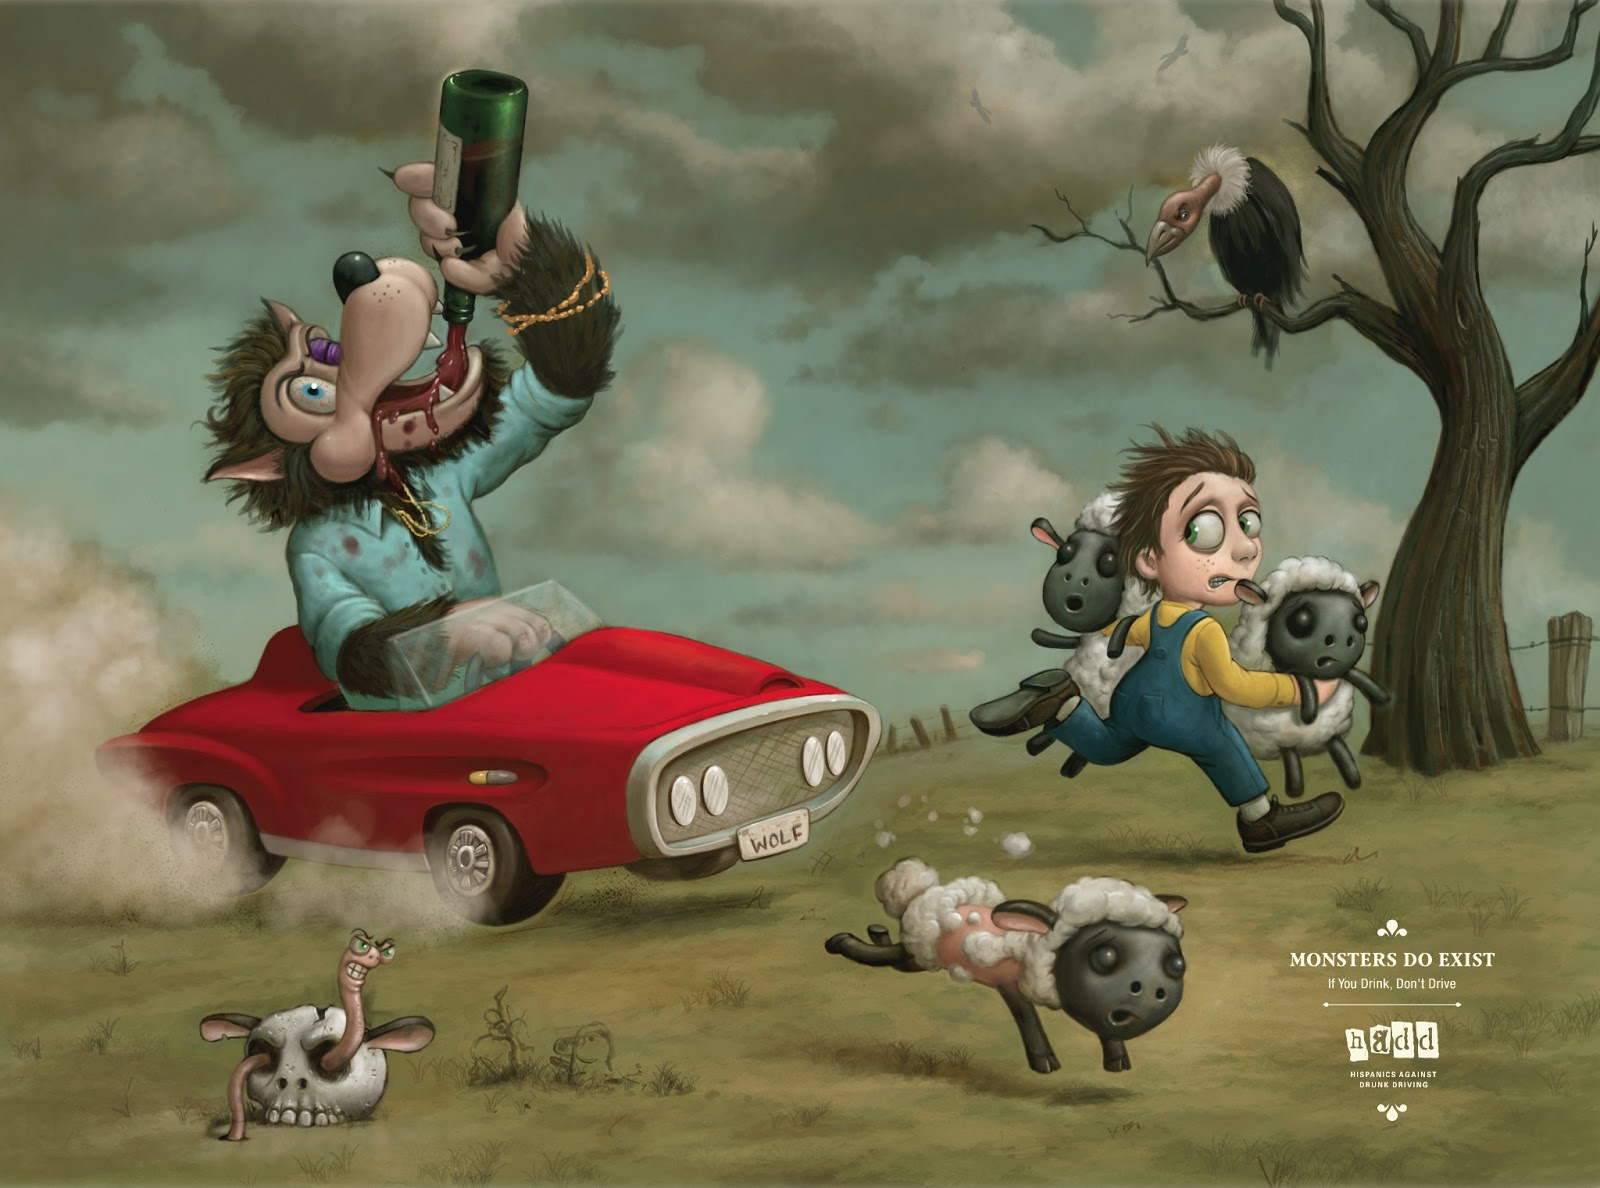 Monsters do exist. If you drink, don't drive. Hispanic Against Drunk Driving.